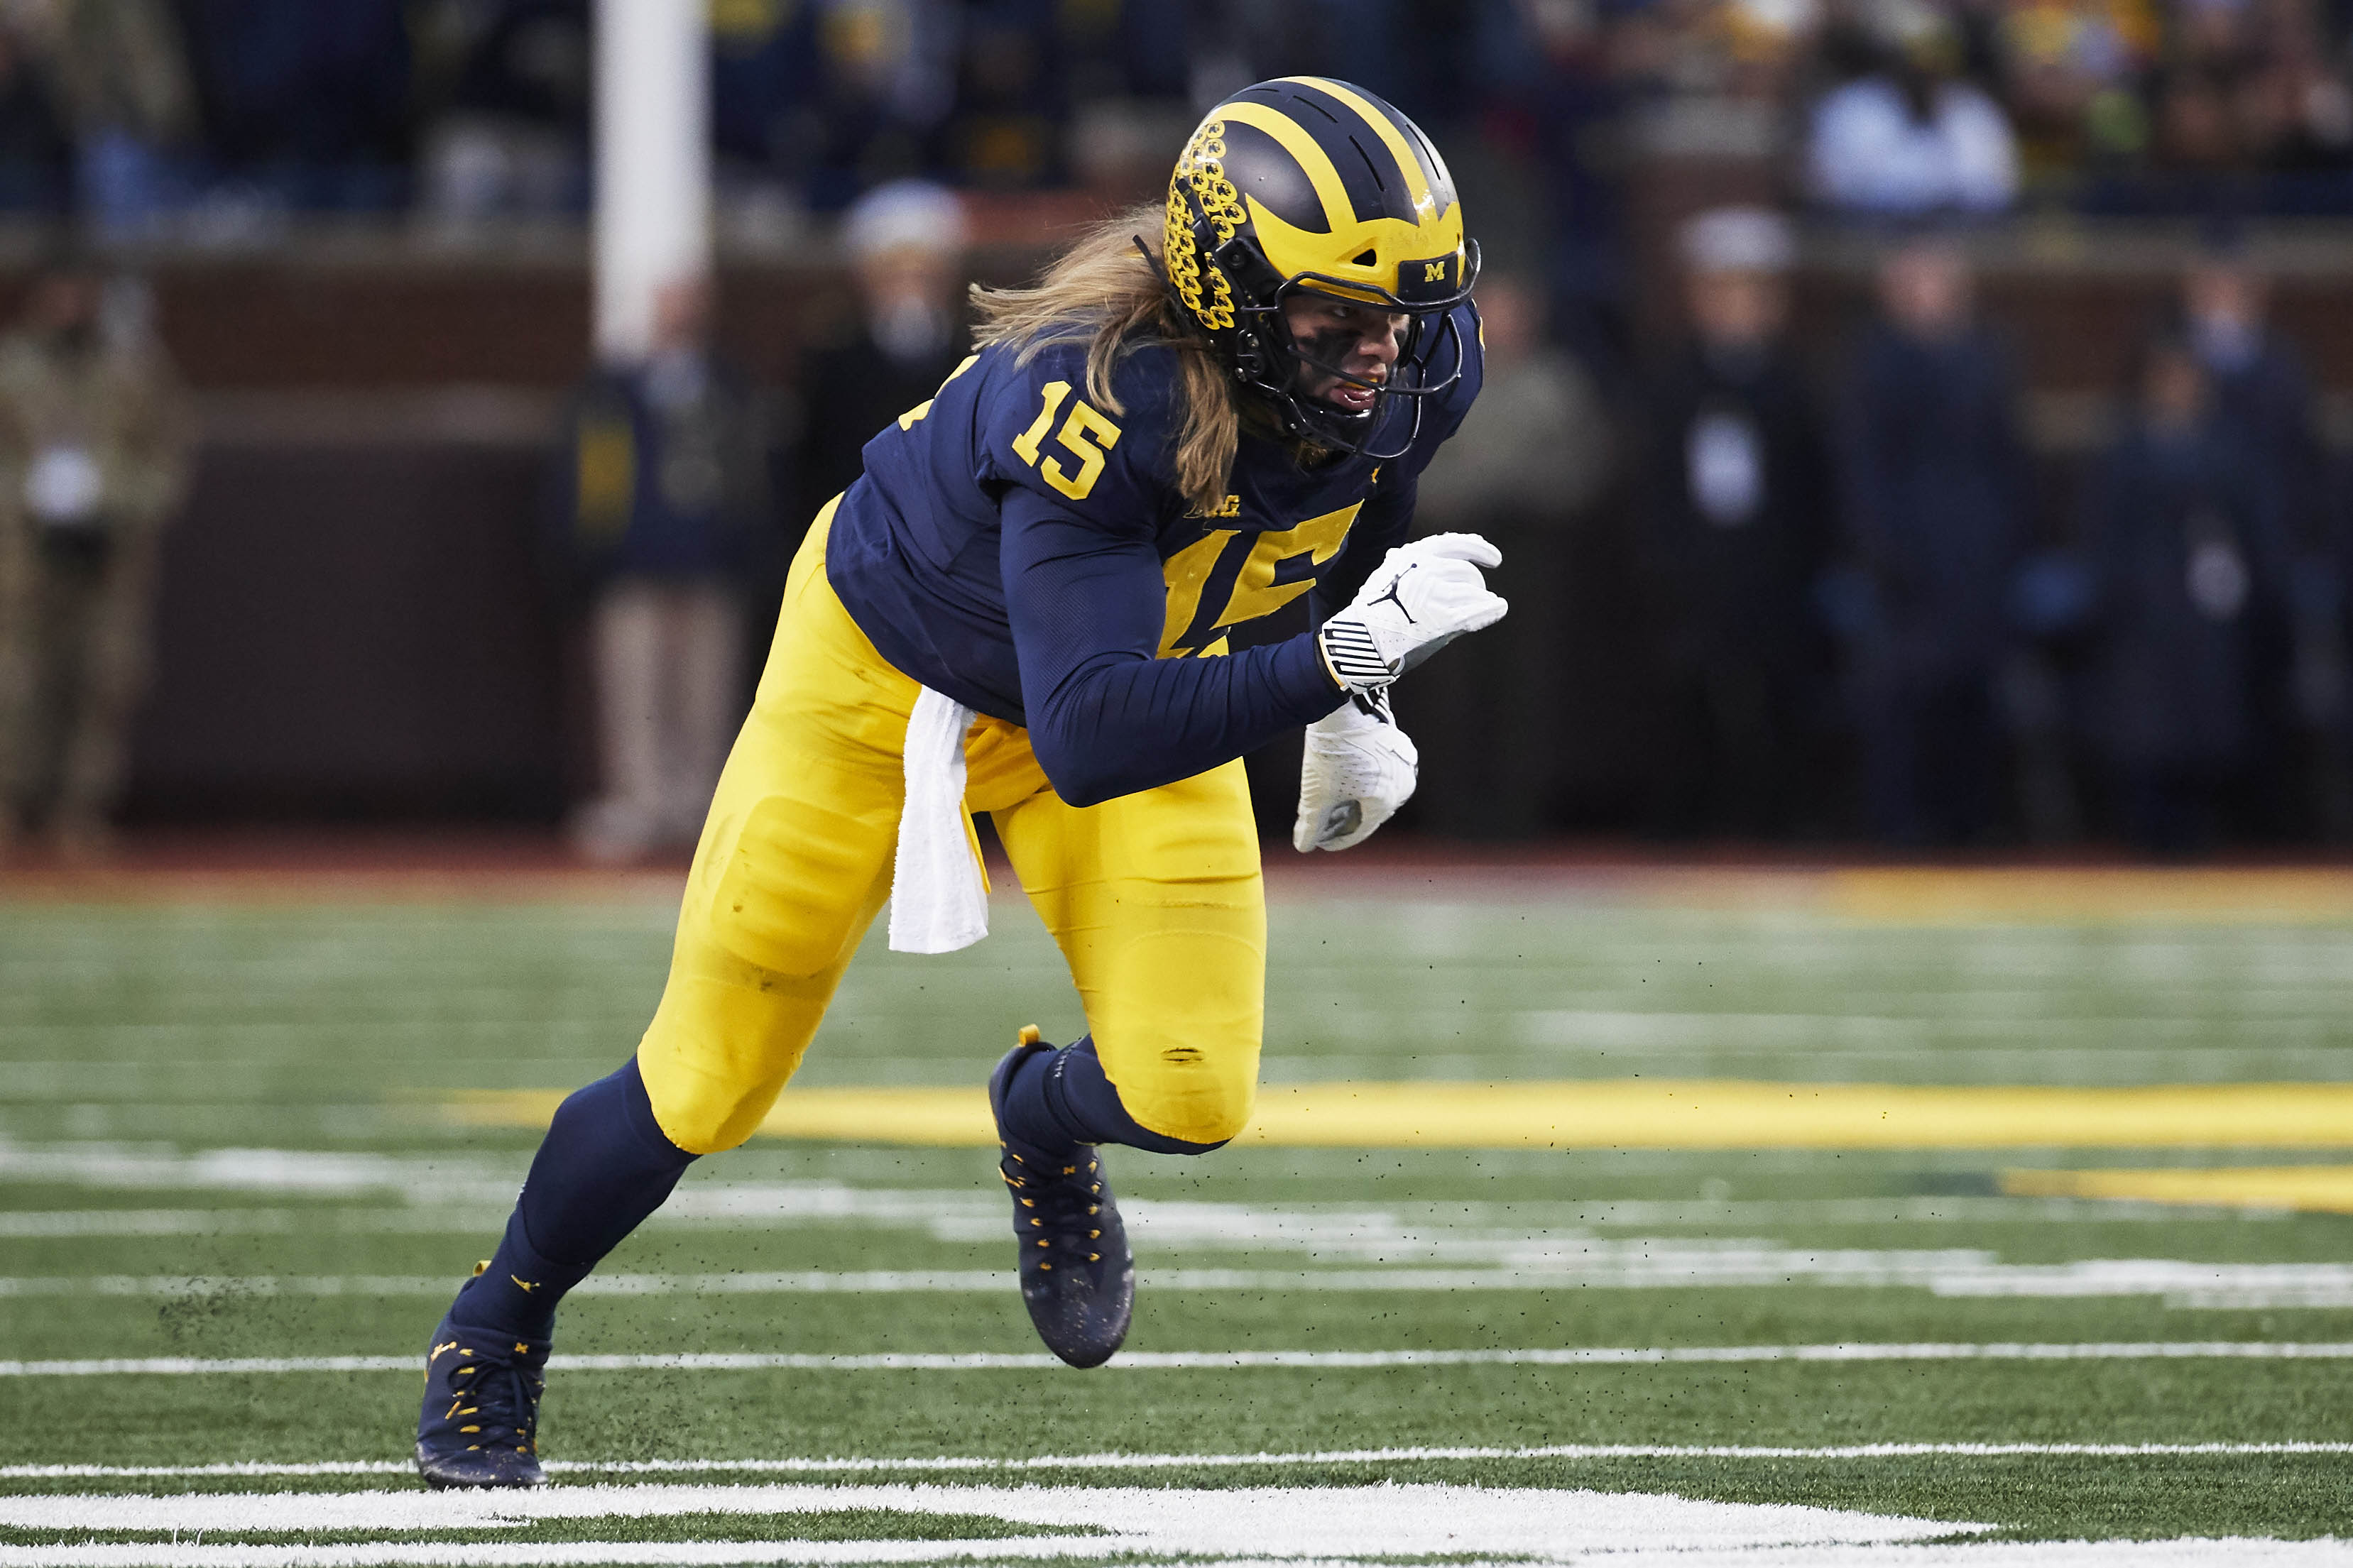 Film room scouting report on Chase Winovich. The Panthers need ... 89cb41c32